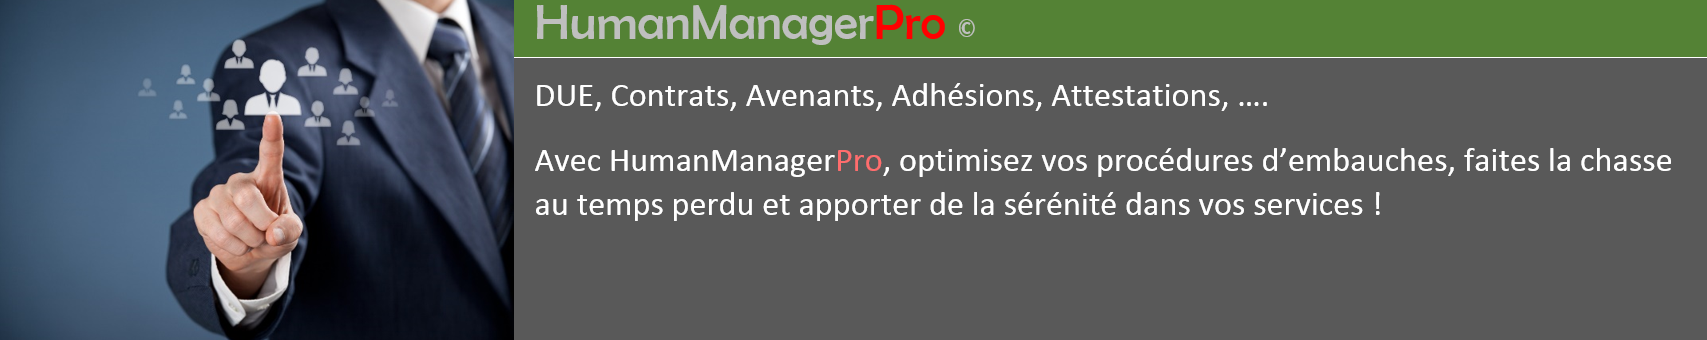 contrat, humanmanager, embauche, ressource, humaine, humanmanagerpro, recrutement, humain, audit, management, manager, développement, application